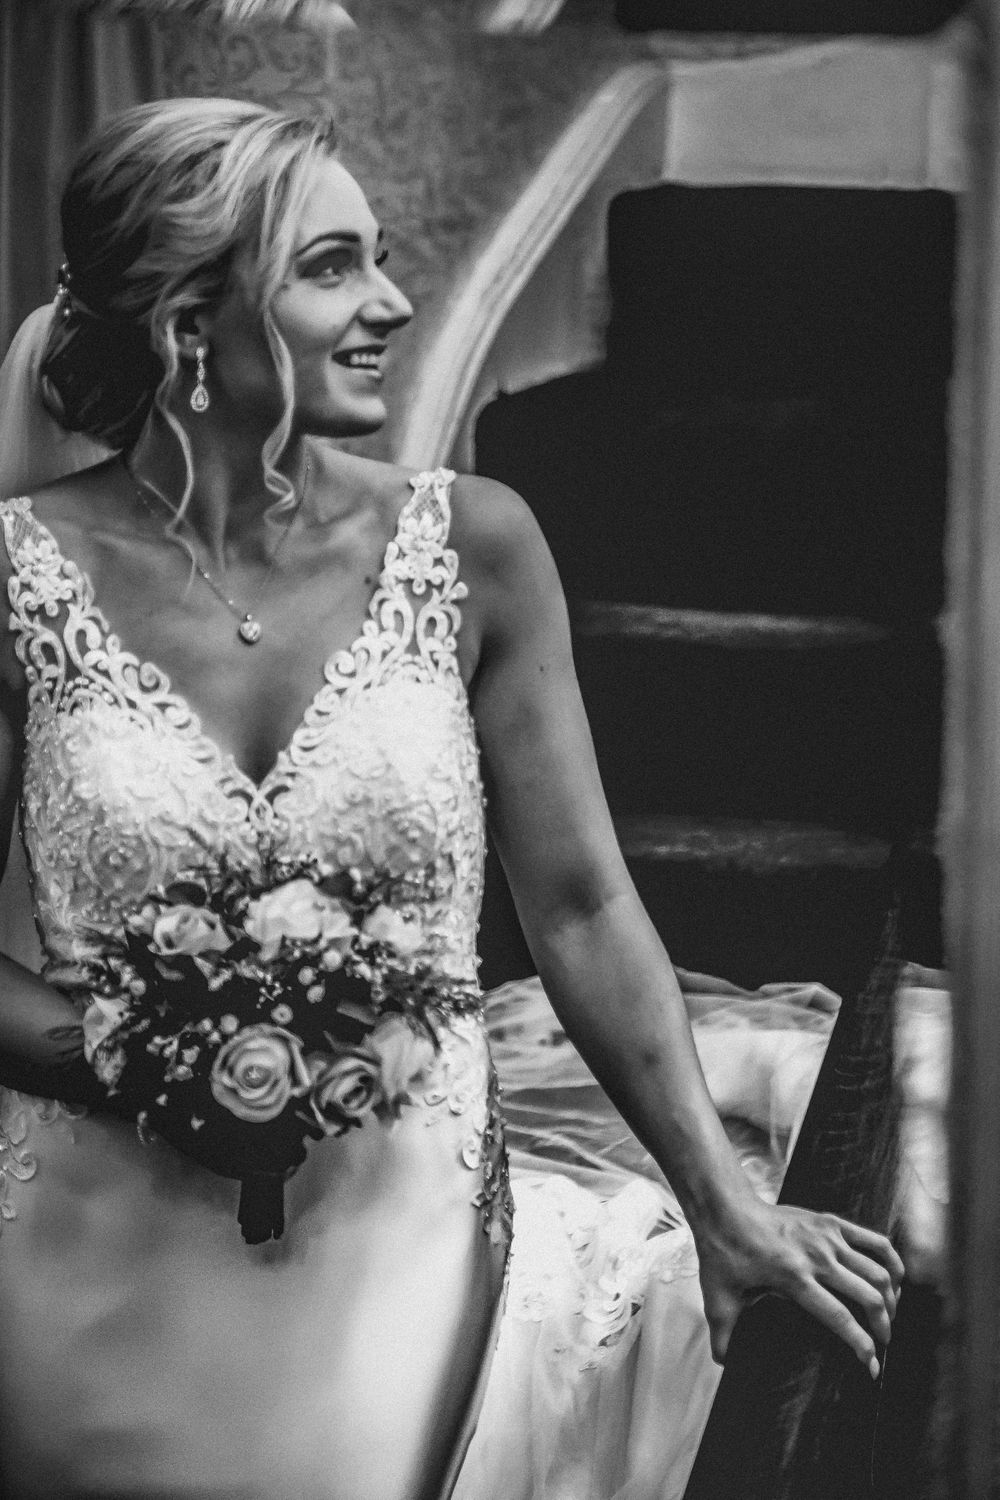 Black and white photo of Bride walking down stairs, reflected in mirror